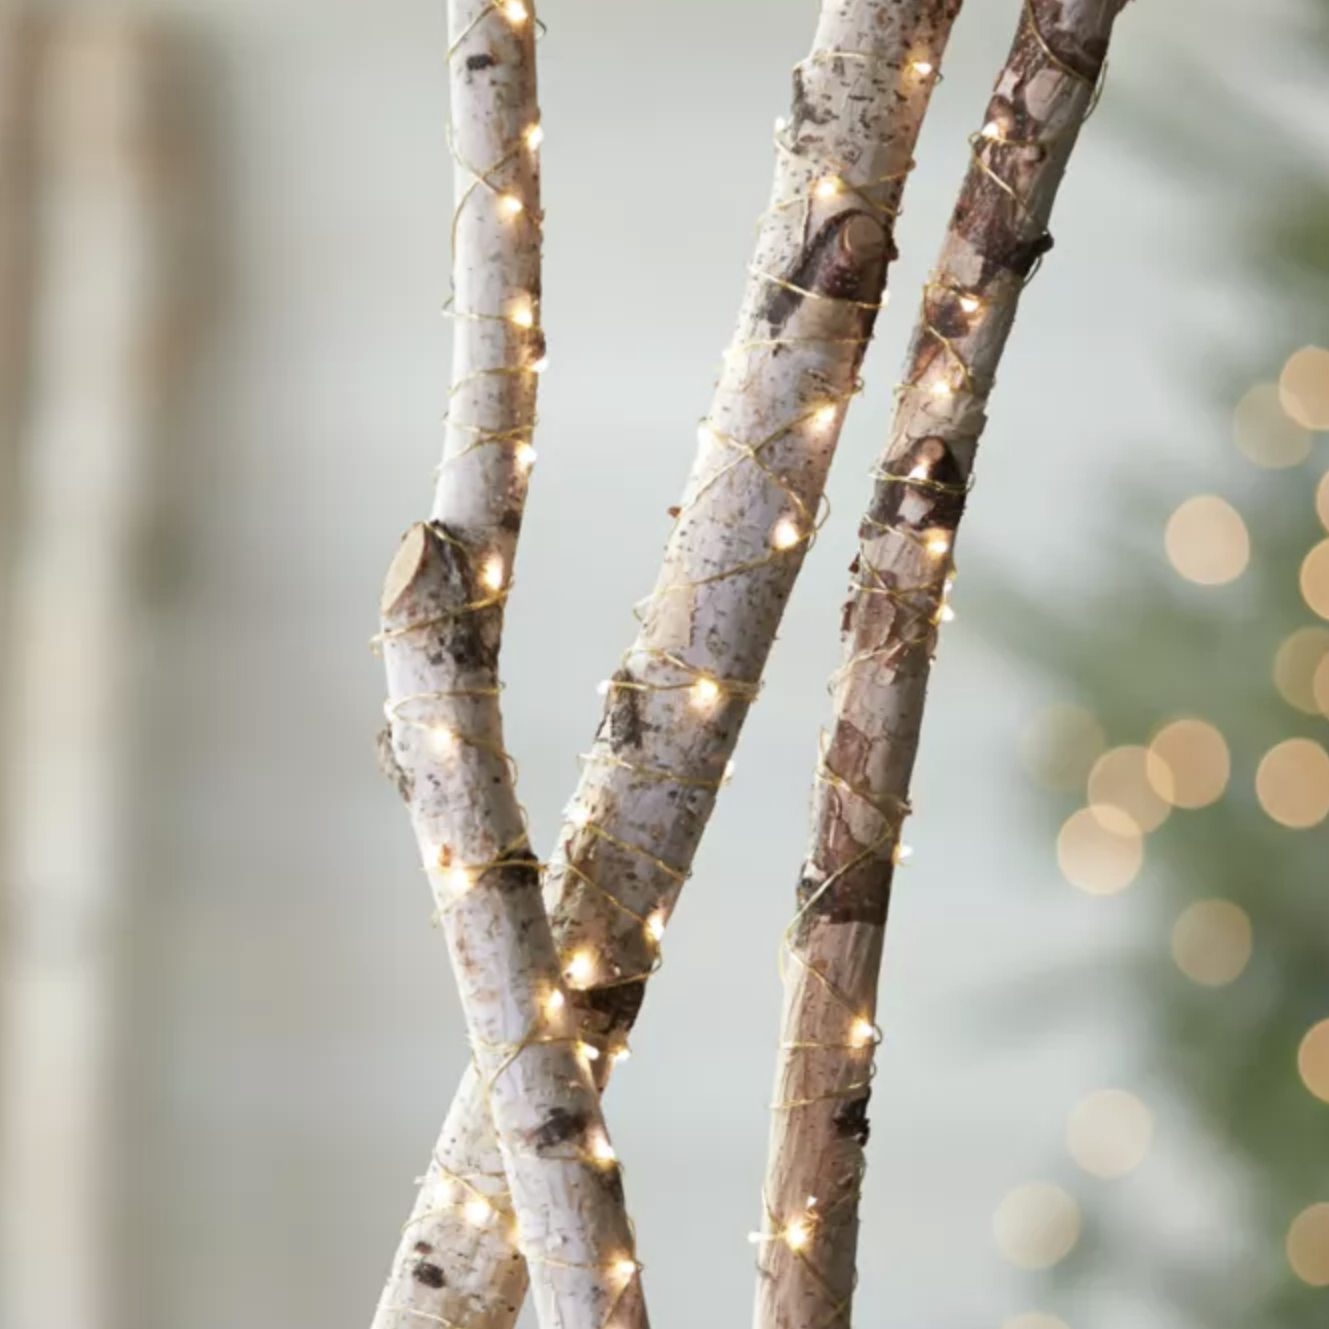 twinkle lights wrapped around tree